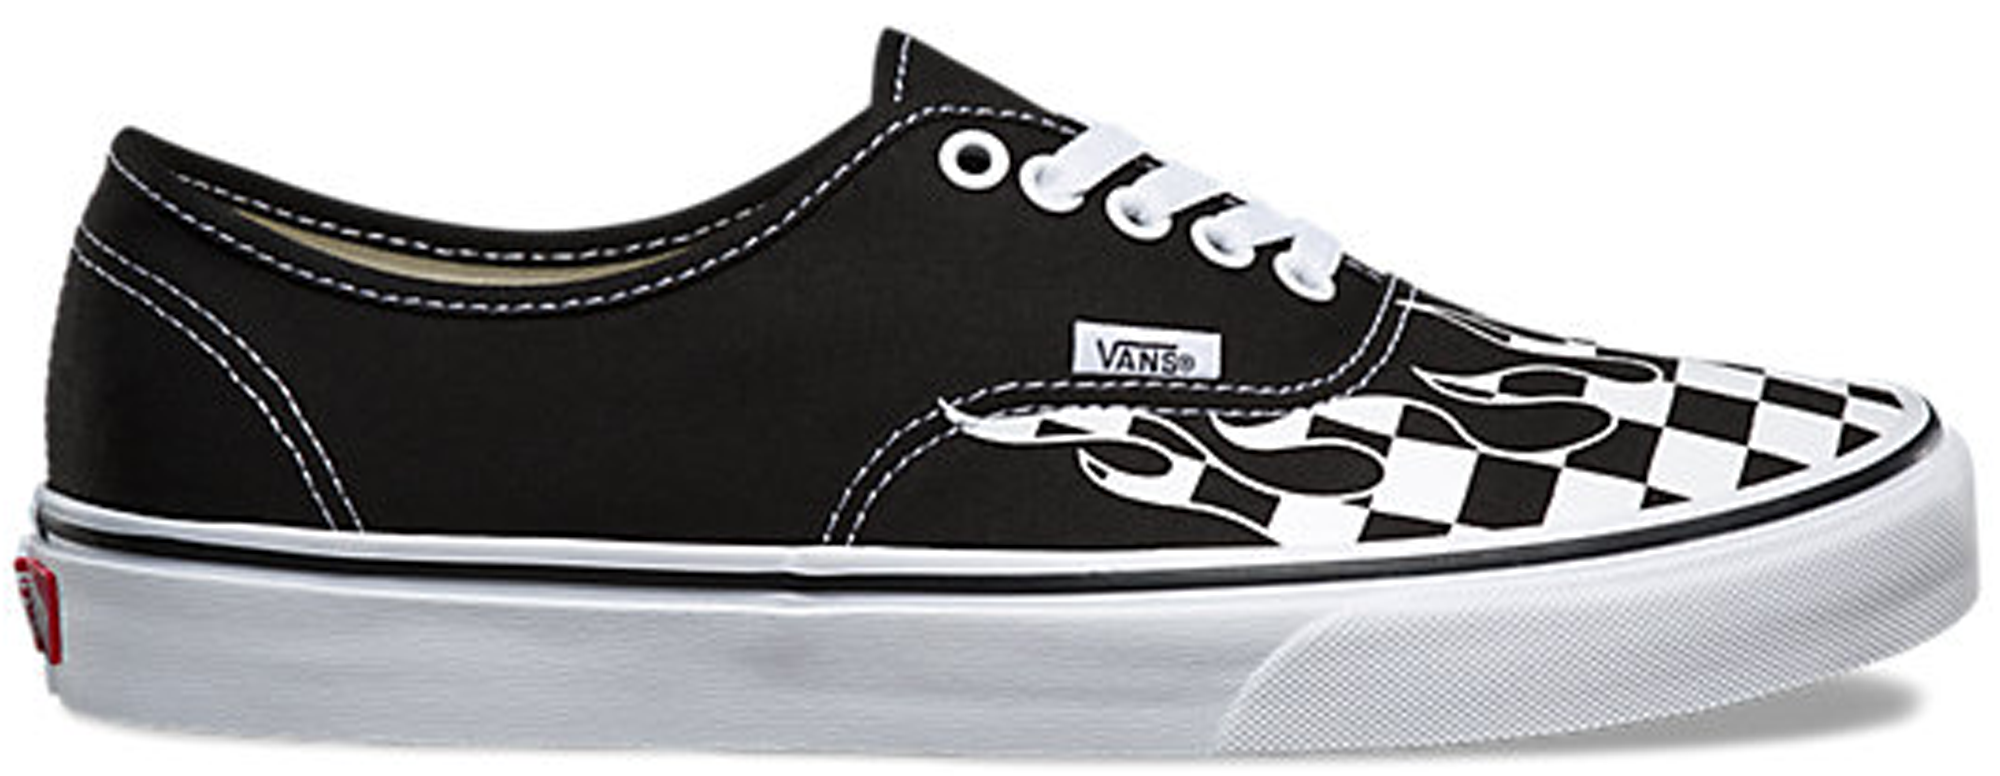 Vans Authentic Checkerboard Flame Black